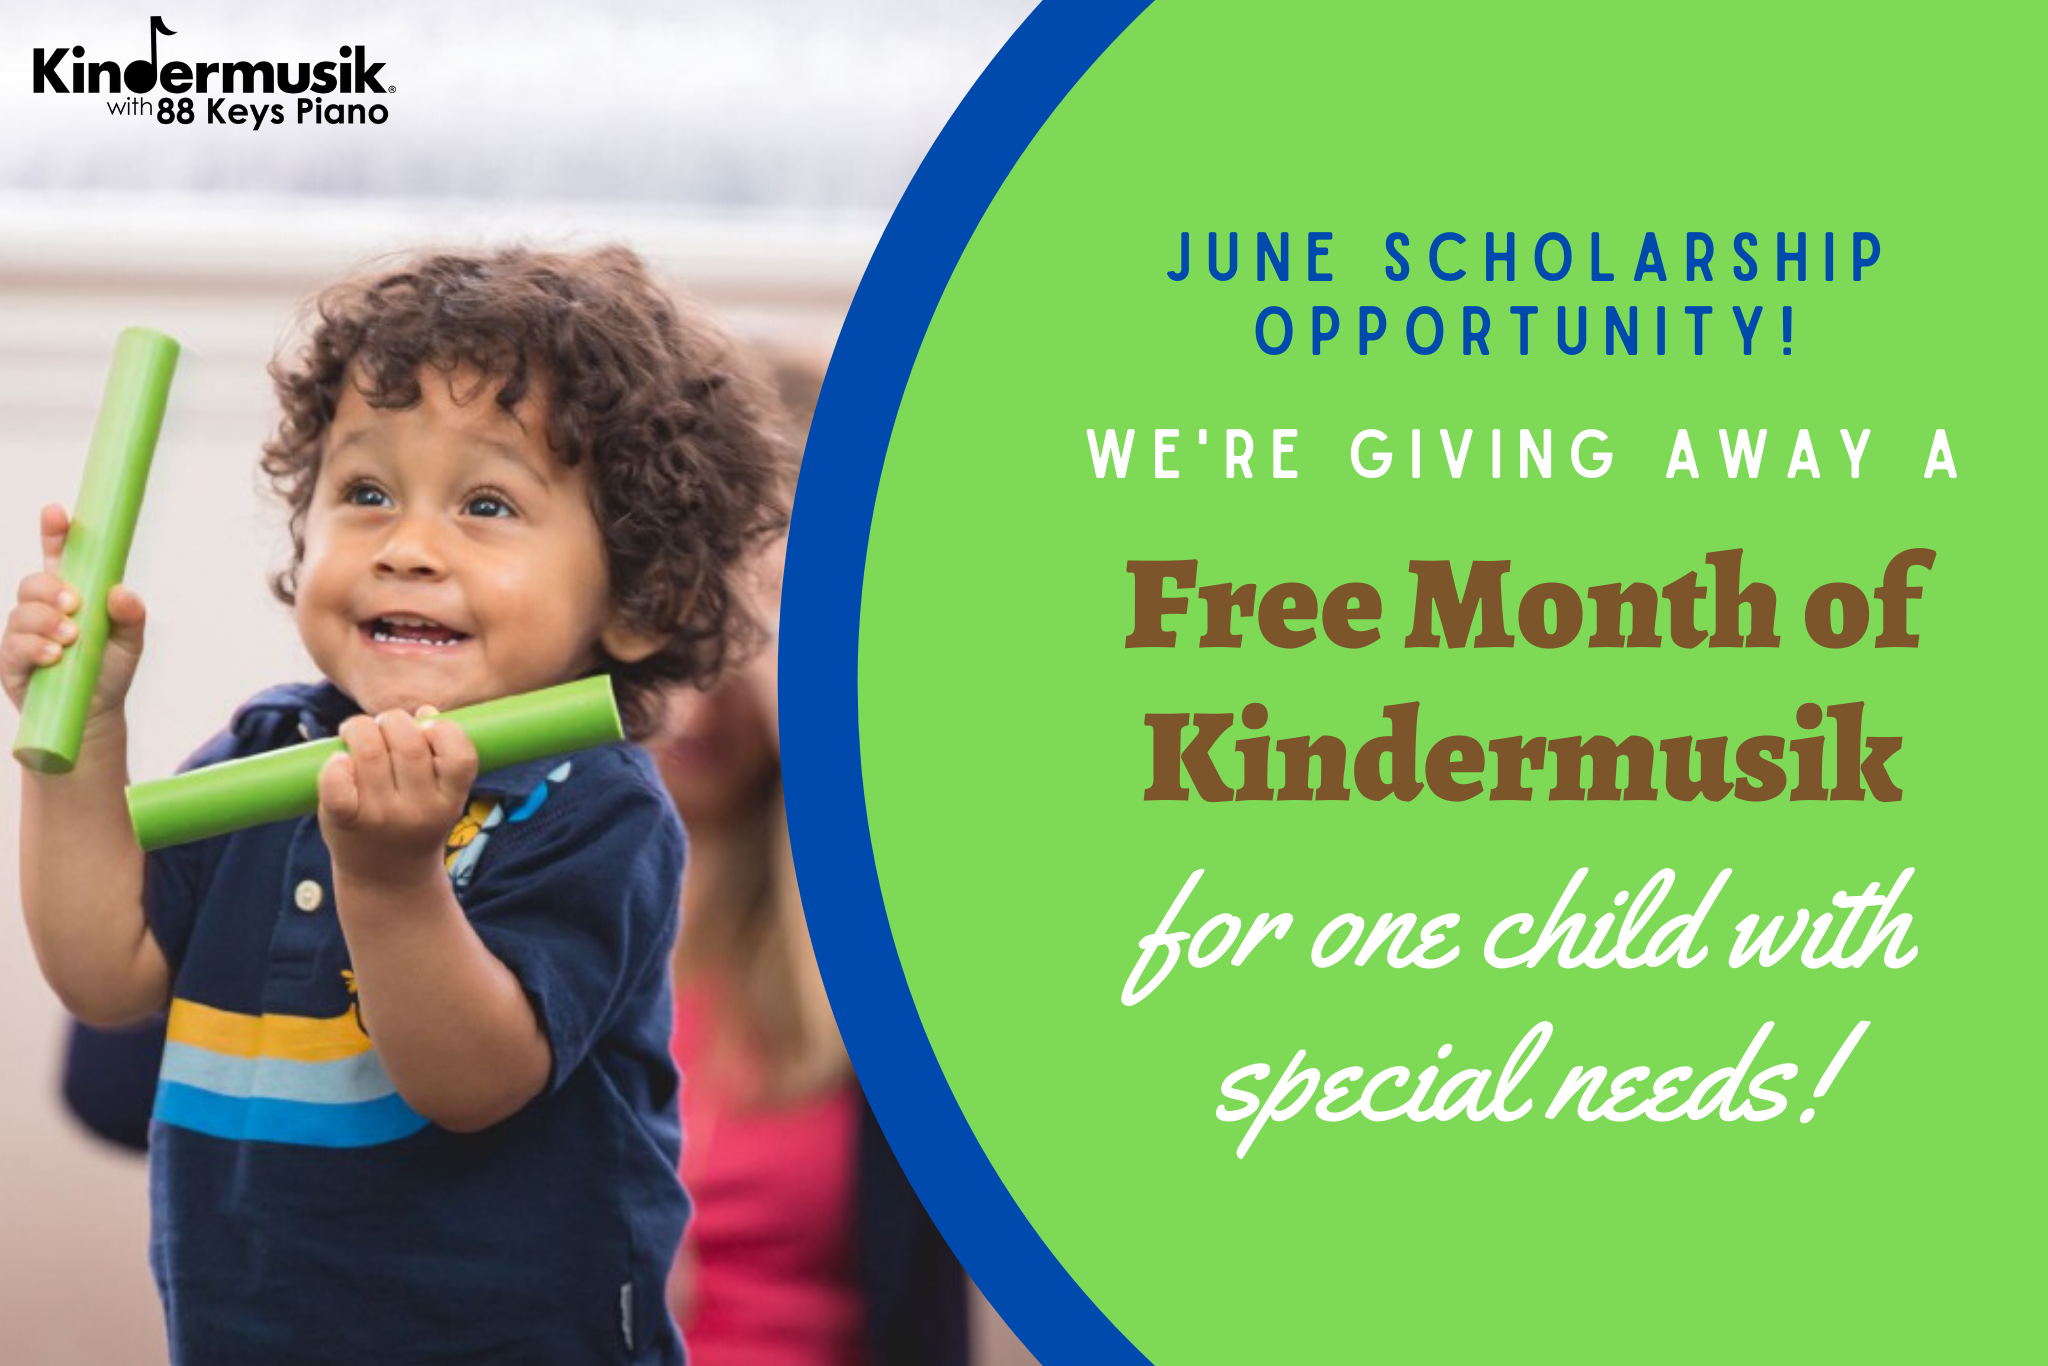 Let's give away some love this spring… Time for our June special needs scholarship!